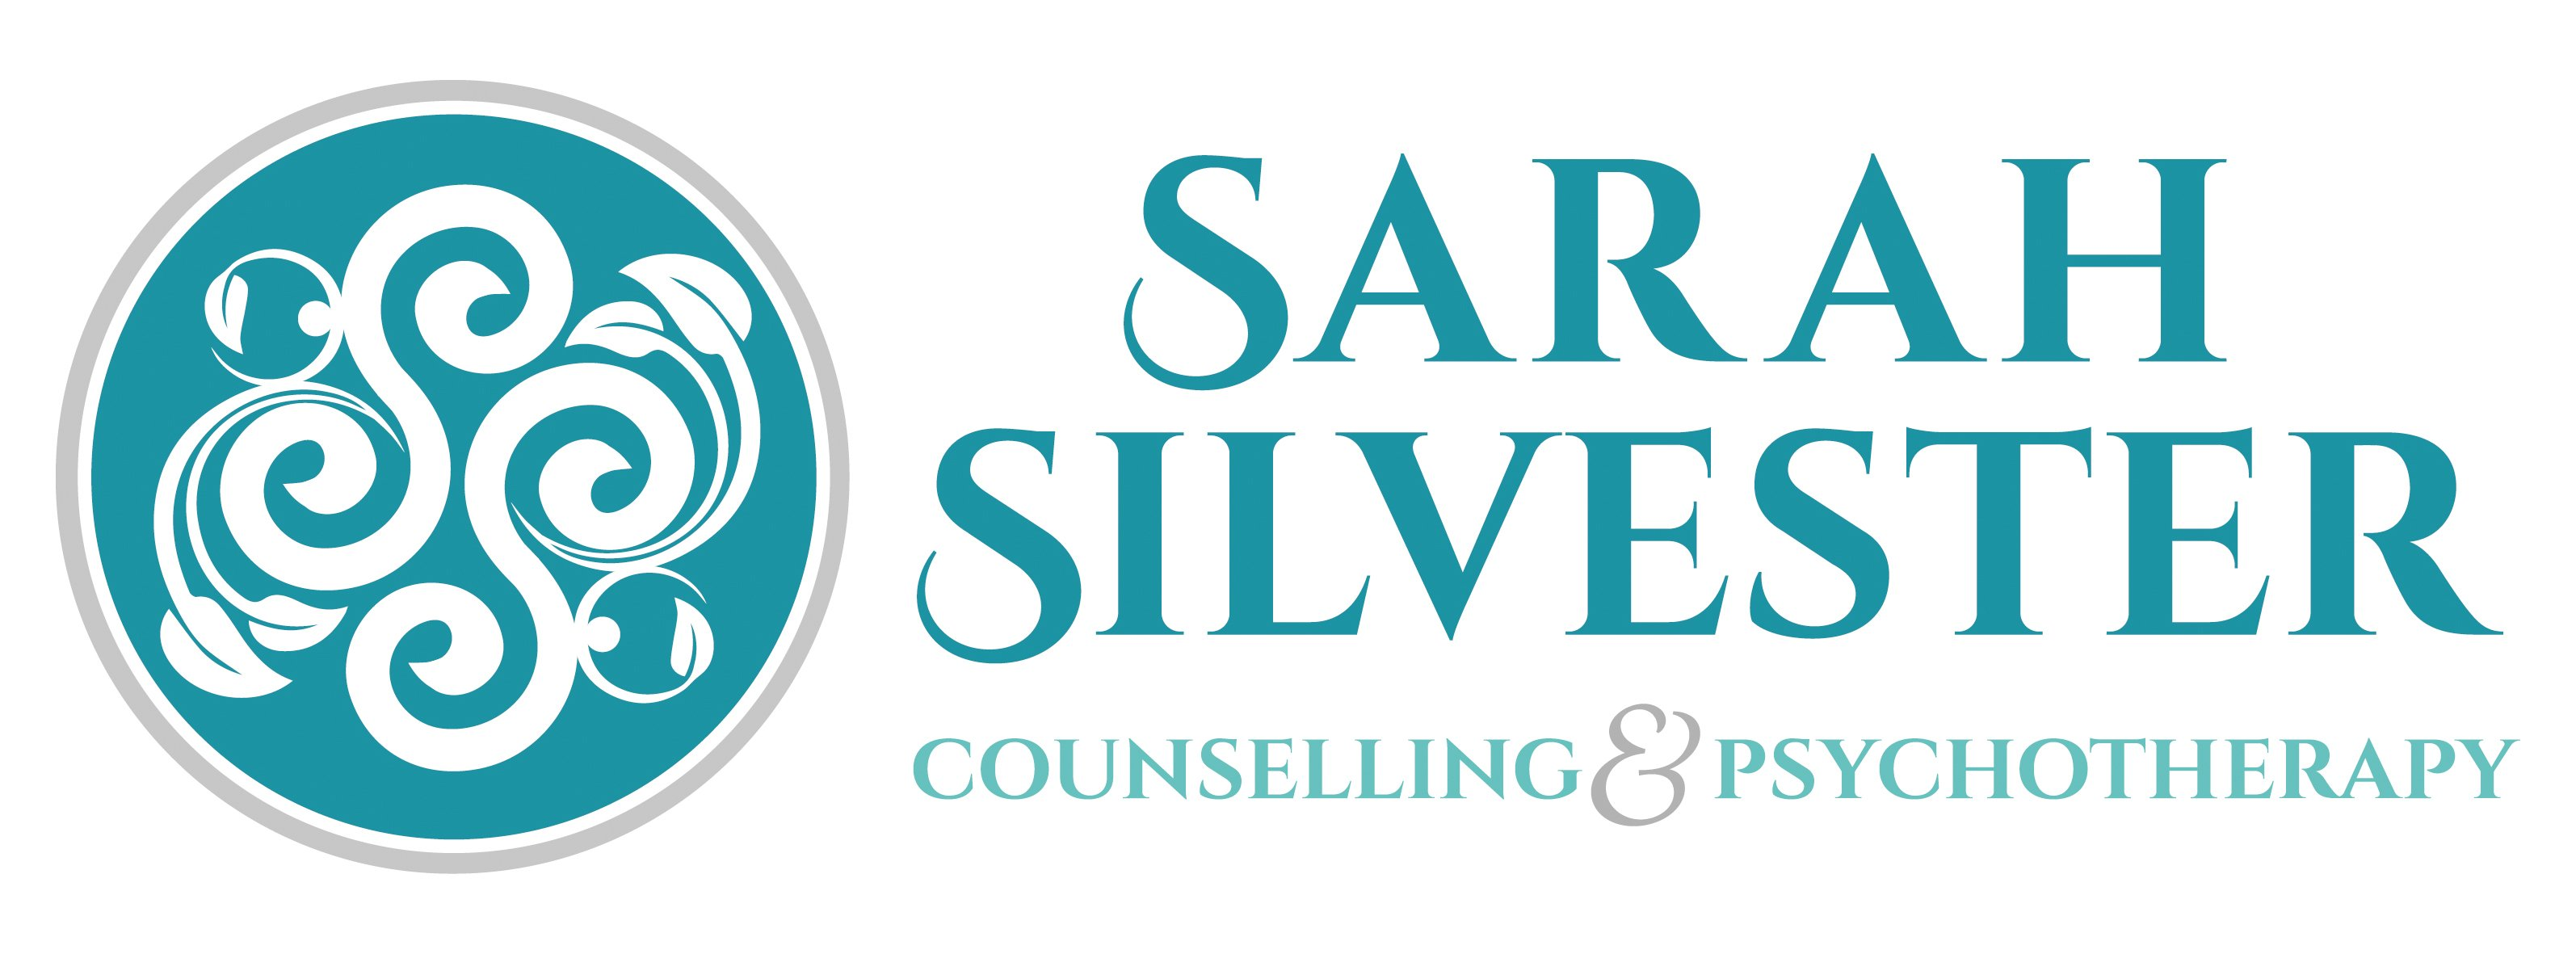 Sarah Silvester Counselling & Psychotherapy